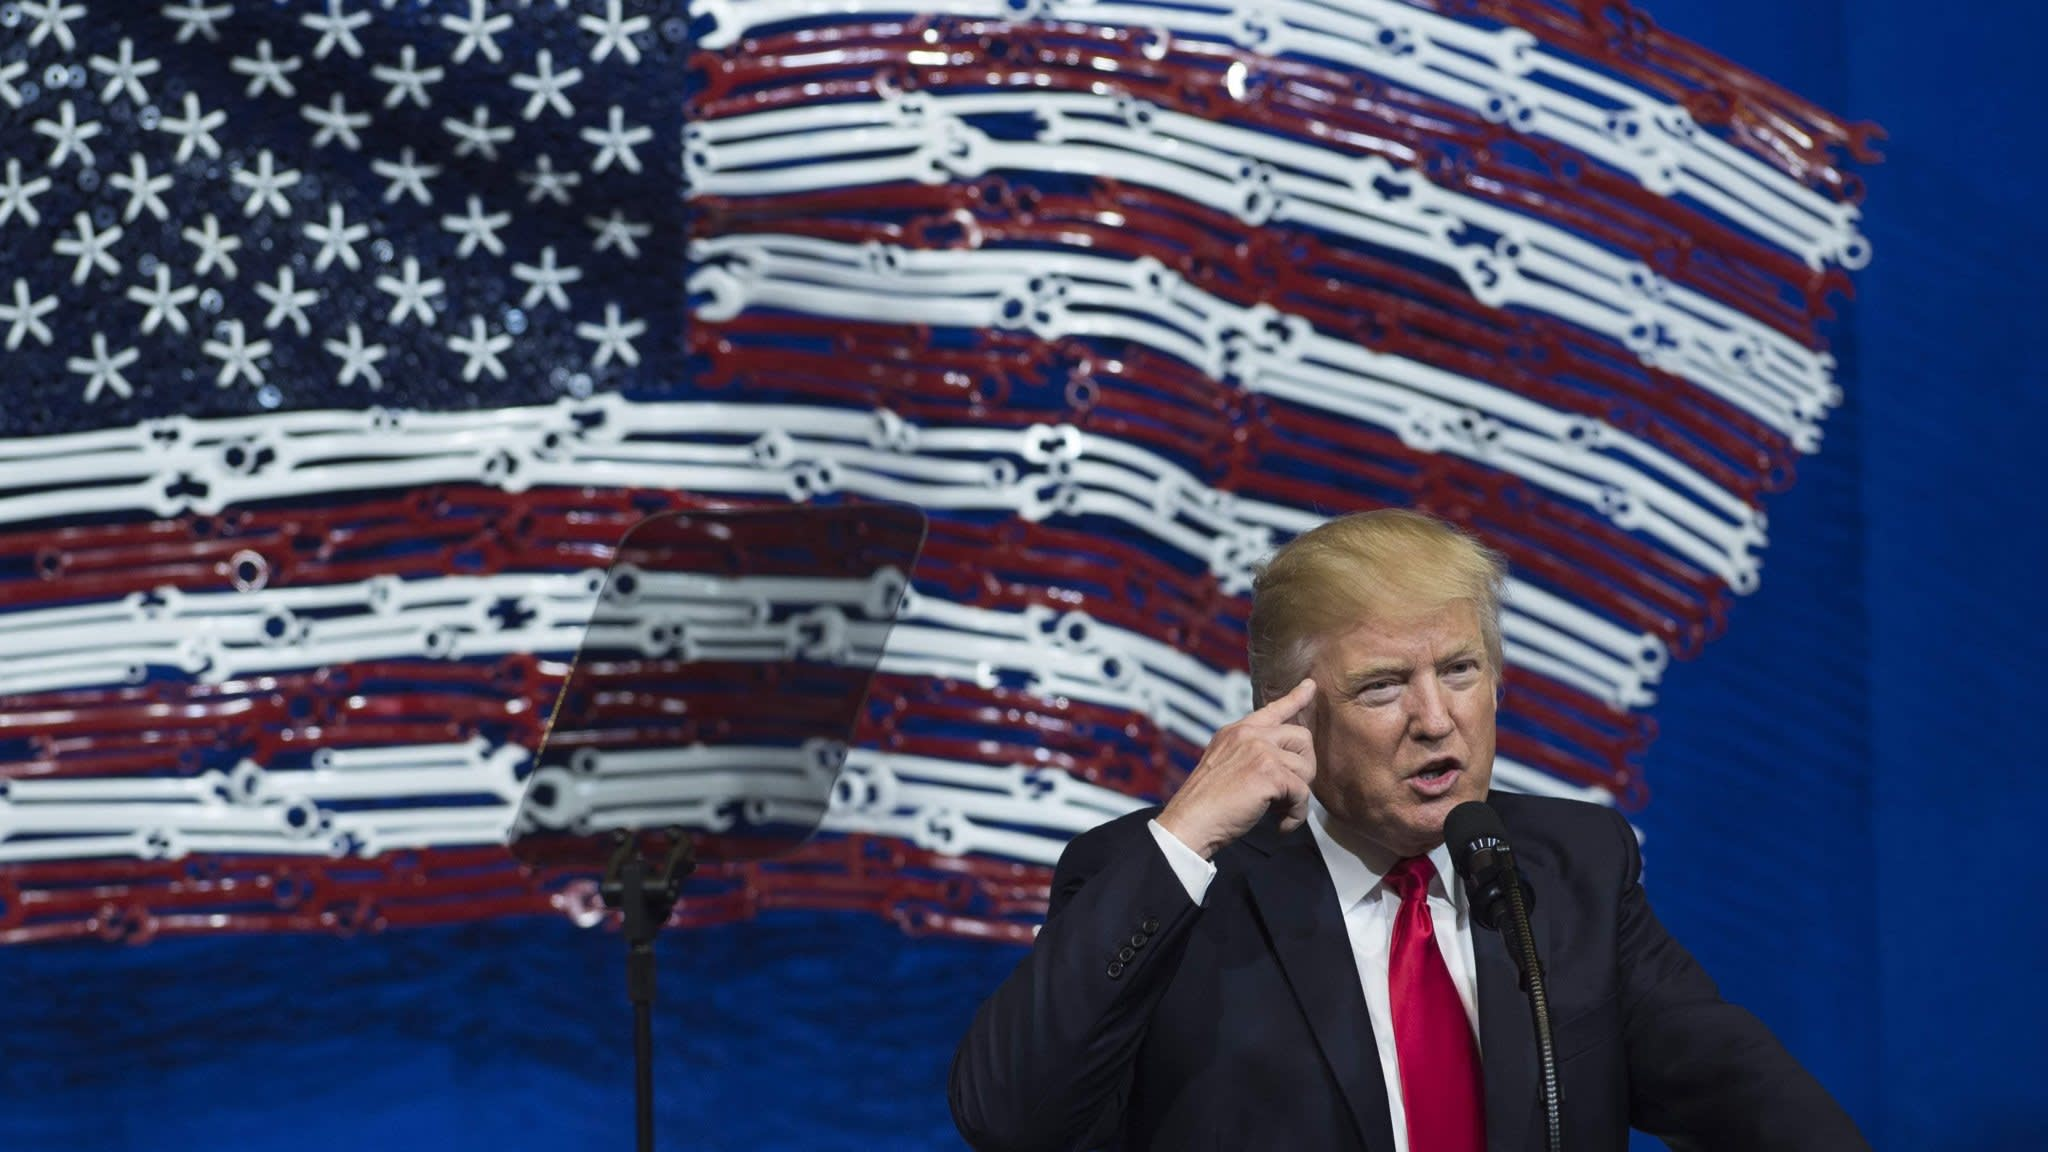 Has the market fallen out of love with Donald Trump?